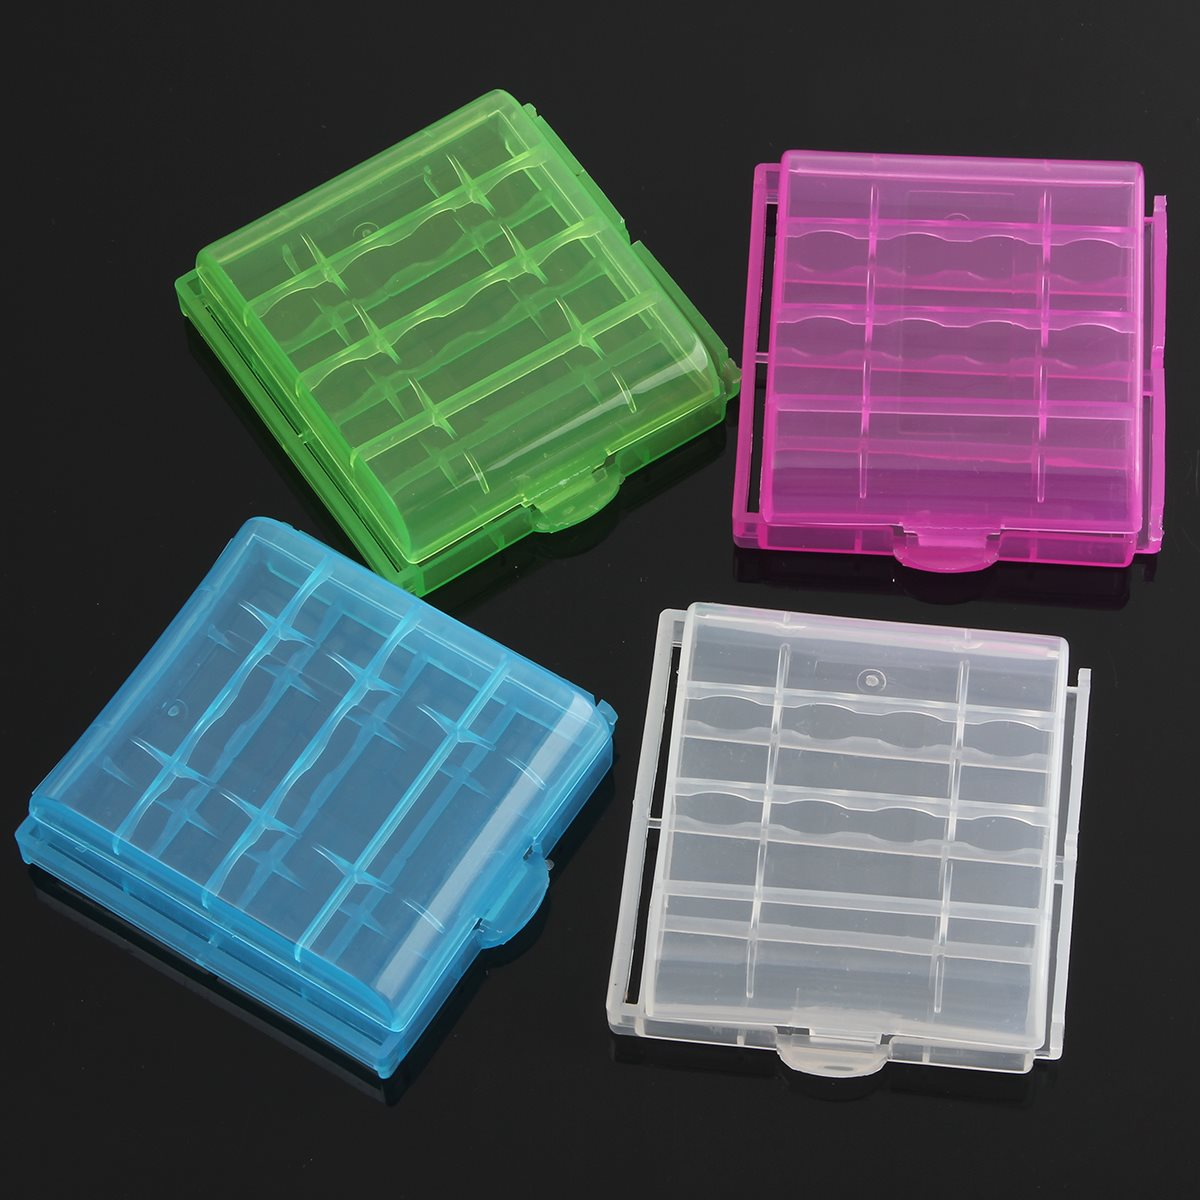 High quality 4 in 1 Semitransparent Durable Hard Plastic Case Holder Storage Box For 4xAA AAA Rechargeable Battery 6x6x2cm<br><br>Aliexpress